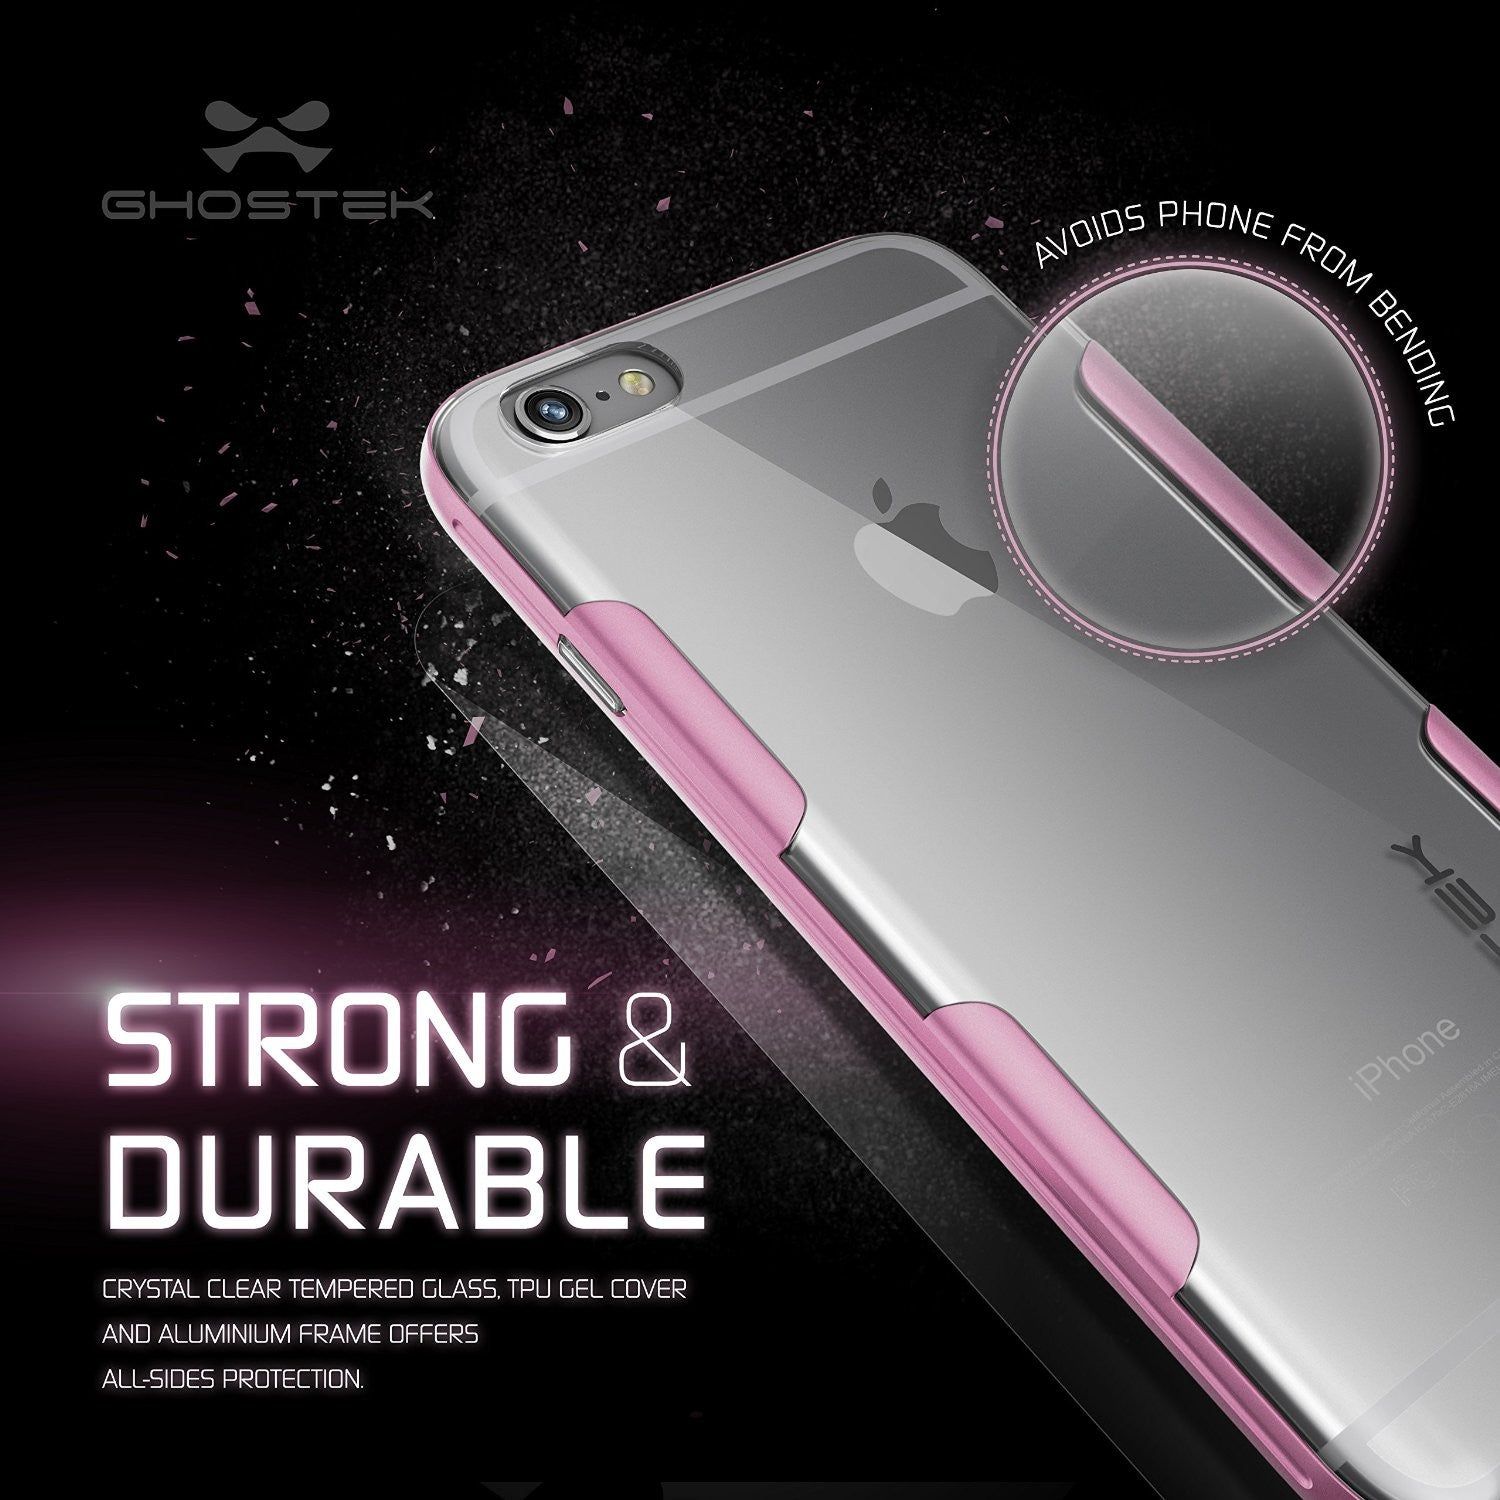 iPhone 6s Plus Case Pink Ghostek Cloak, Slim Protective Armor w/ Tempered Glass | Lifetime Warranty